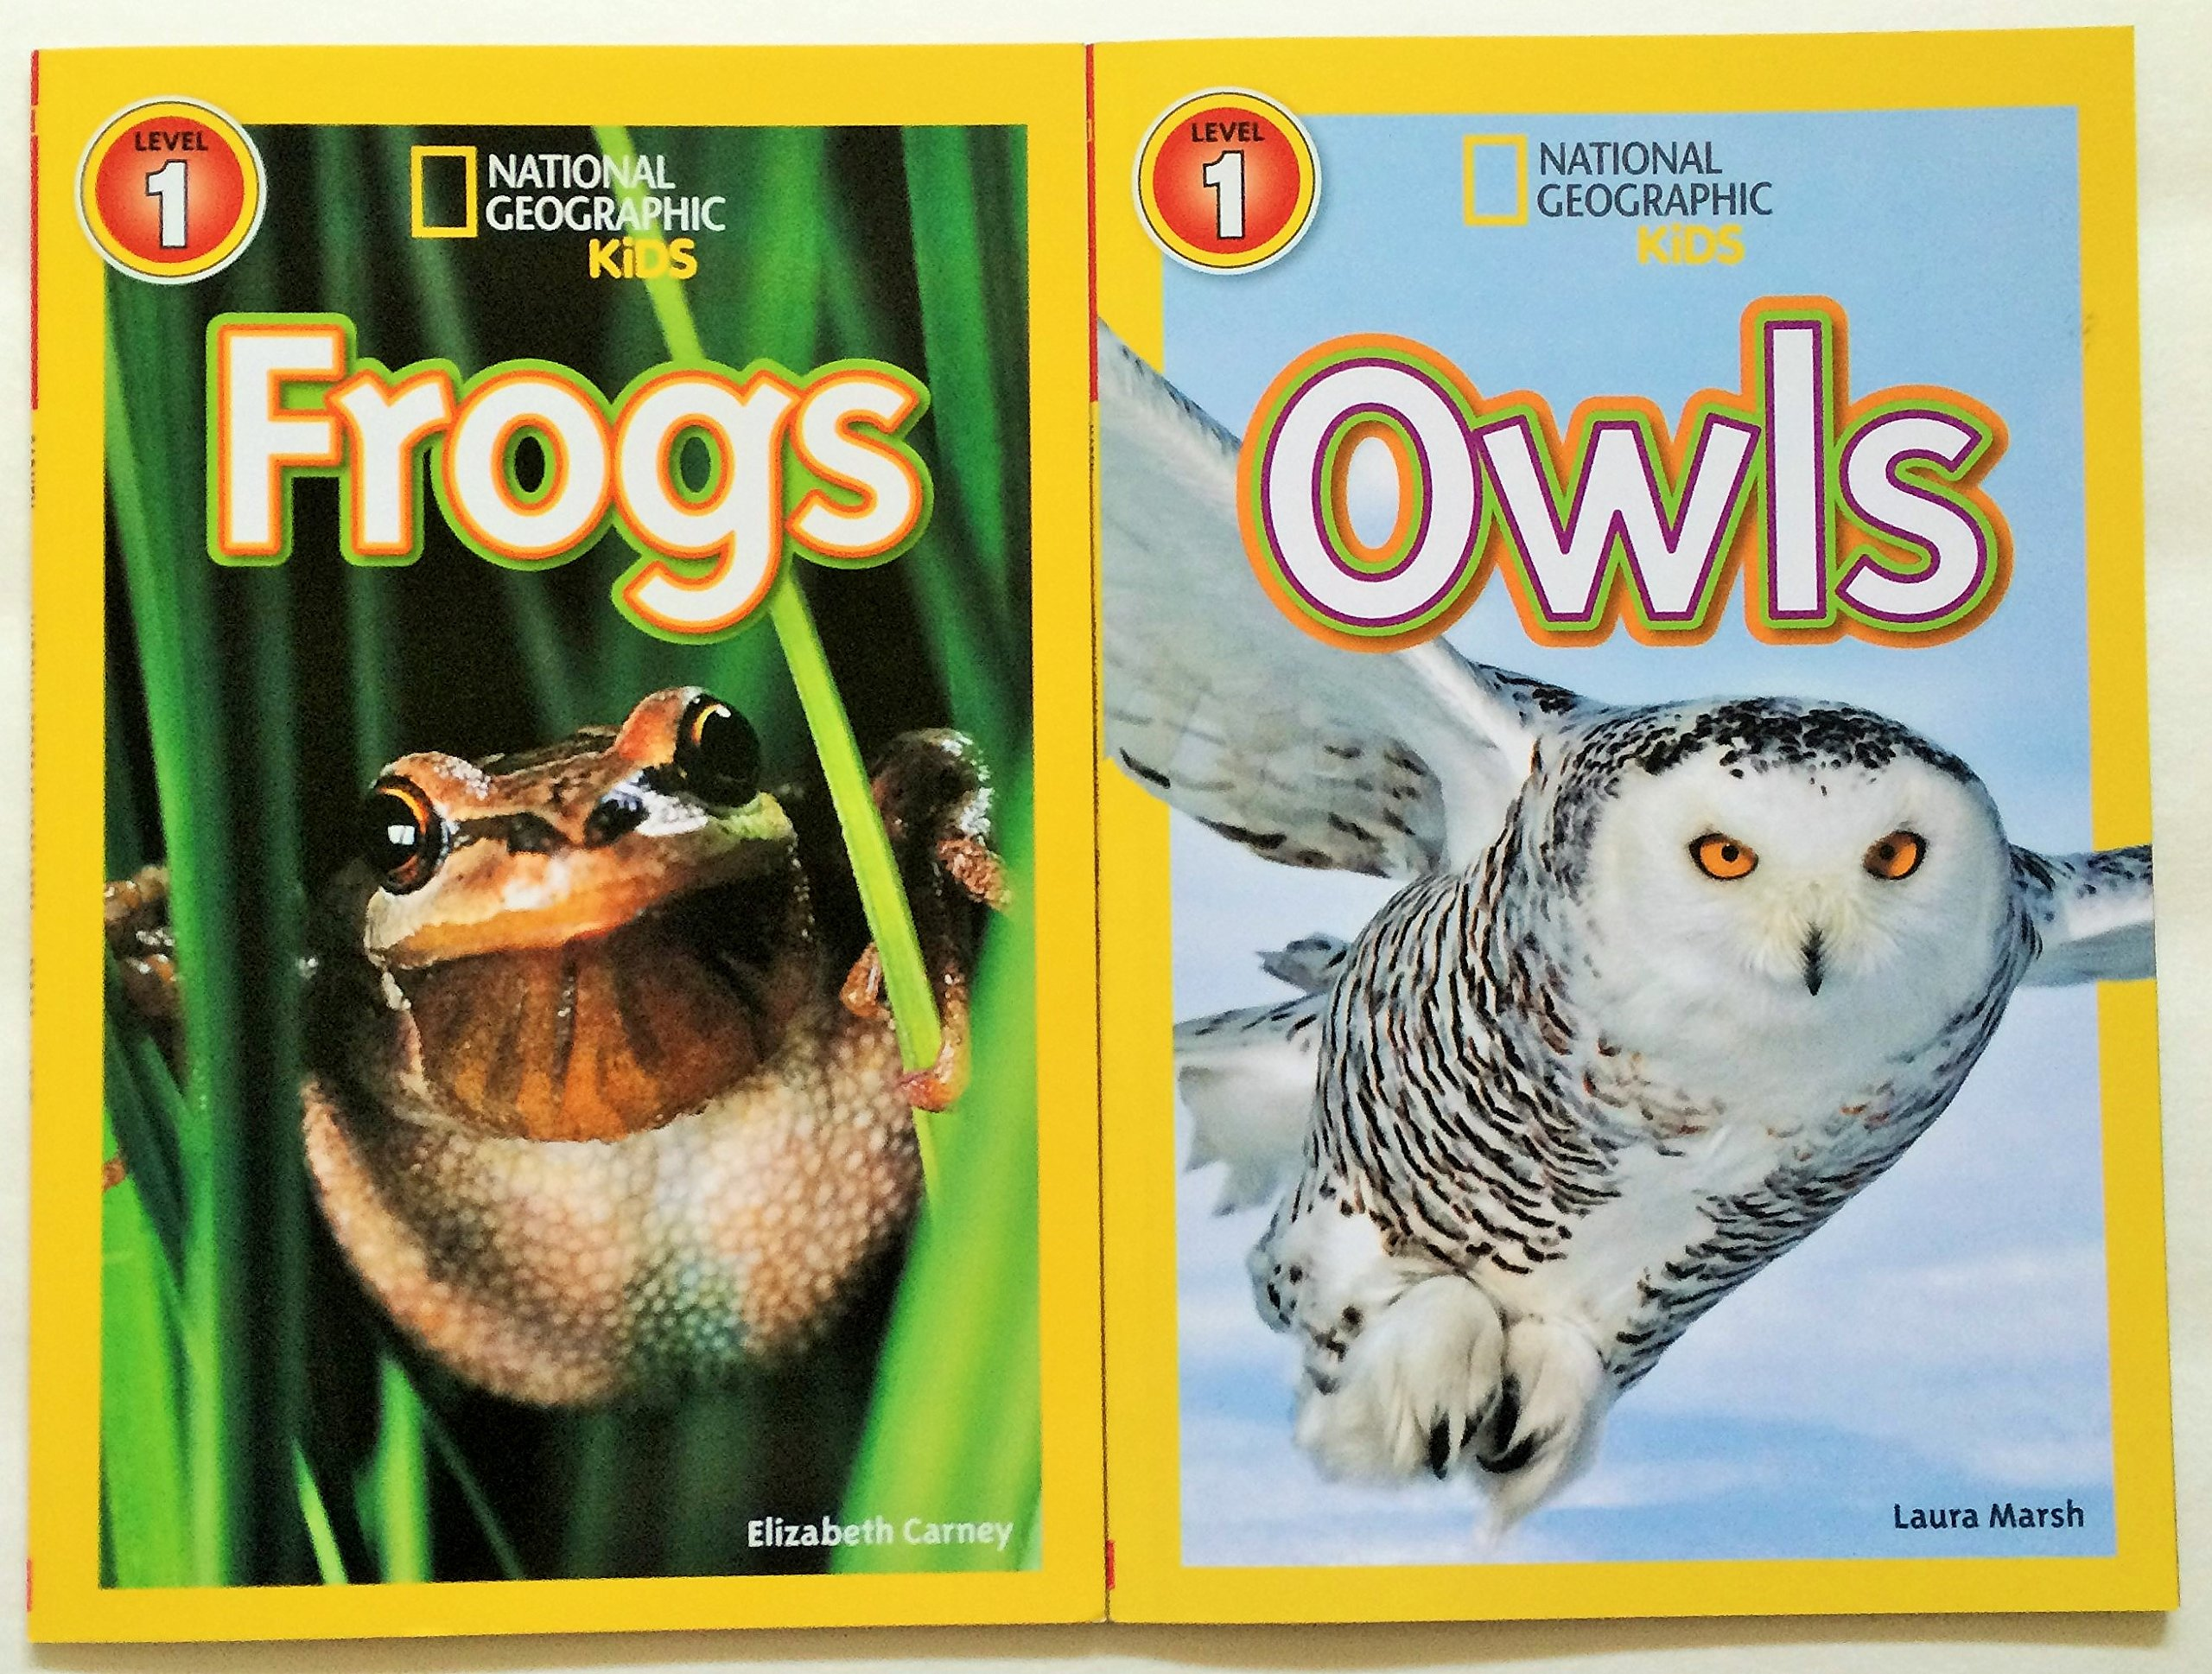 national geographic kids chapters 5 readers set frogs owls